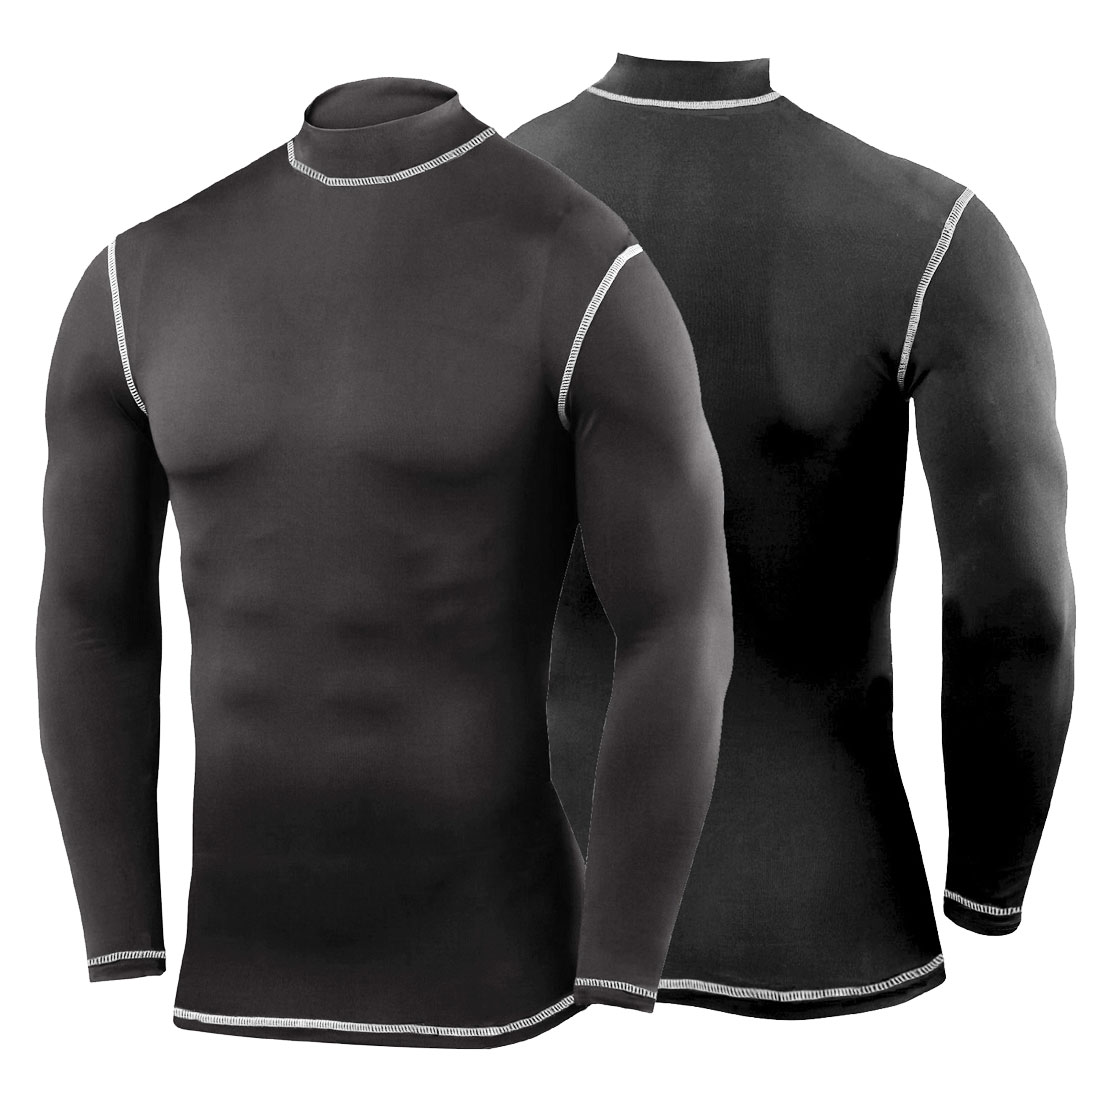 Shop Under Armour men's compression and short sleeve shirts with sweat wicking technology to stay dry. FREE SHIPPING available in the US.